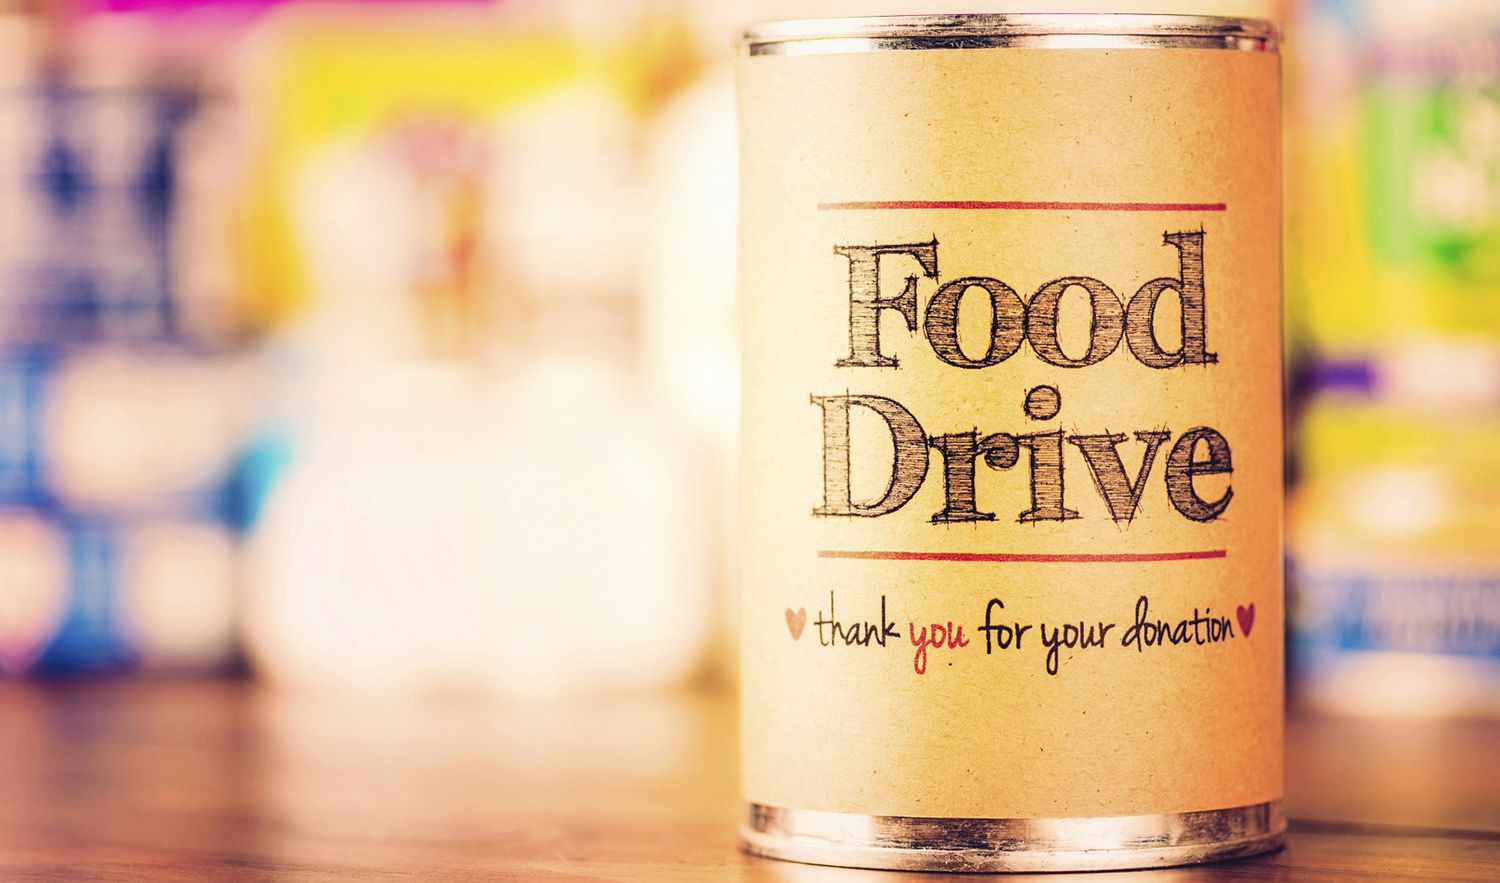 Elk grove office gives where they live food drive